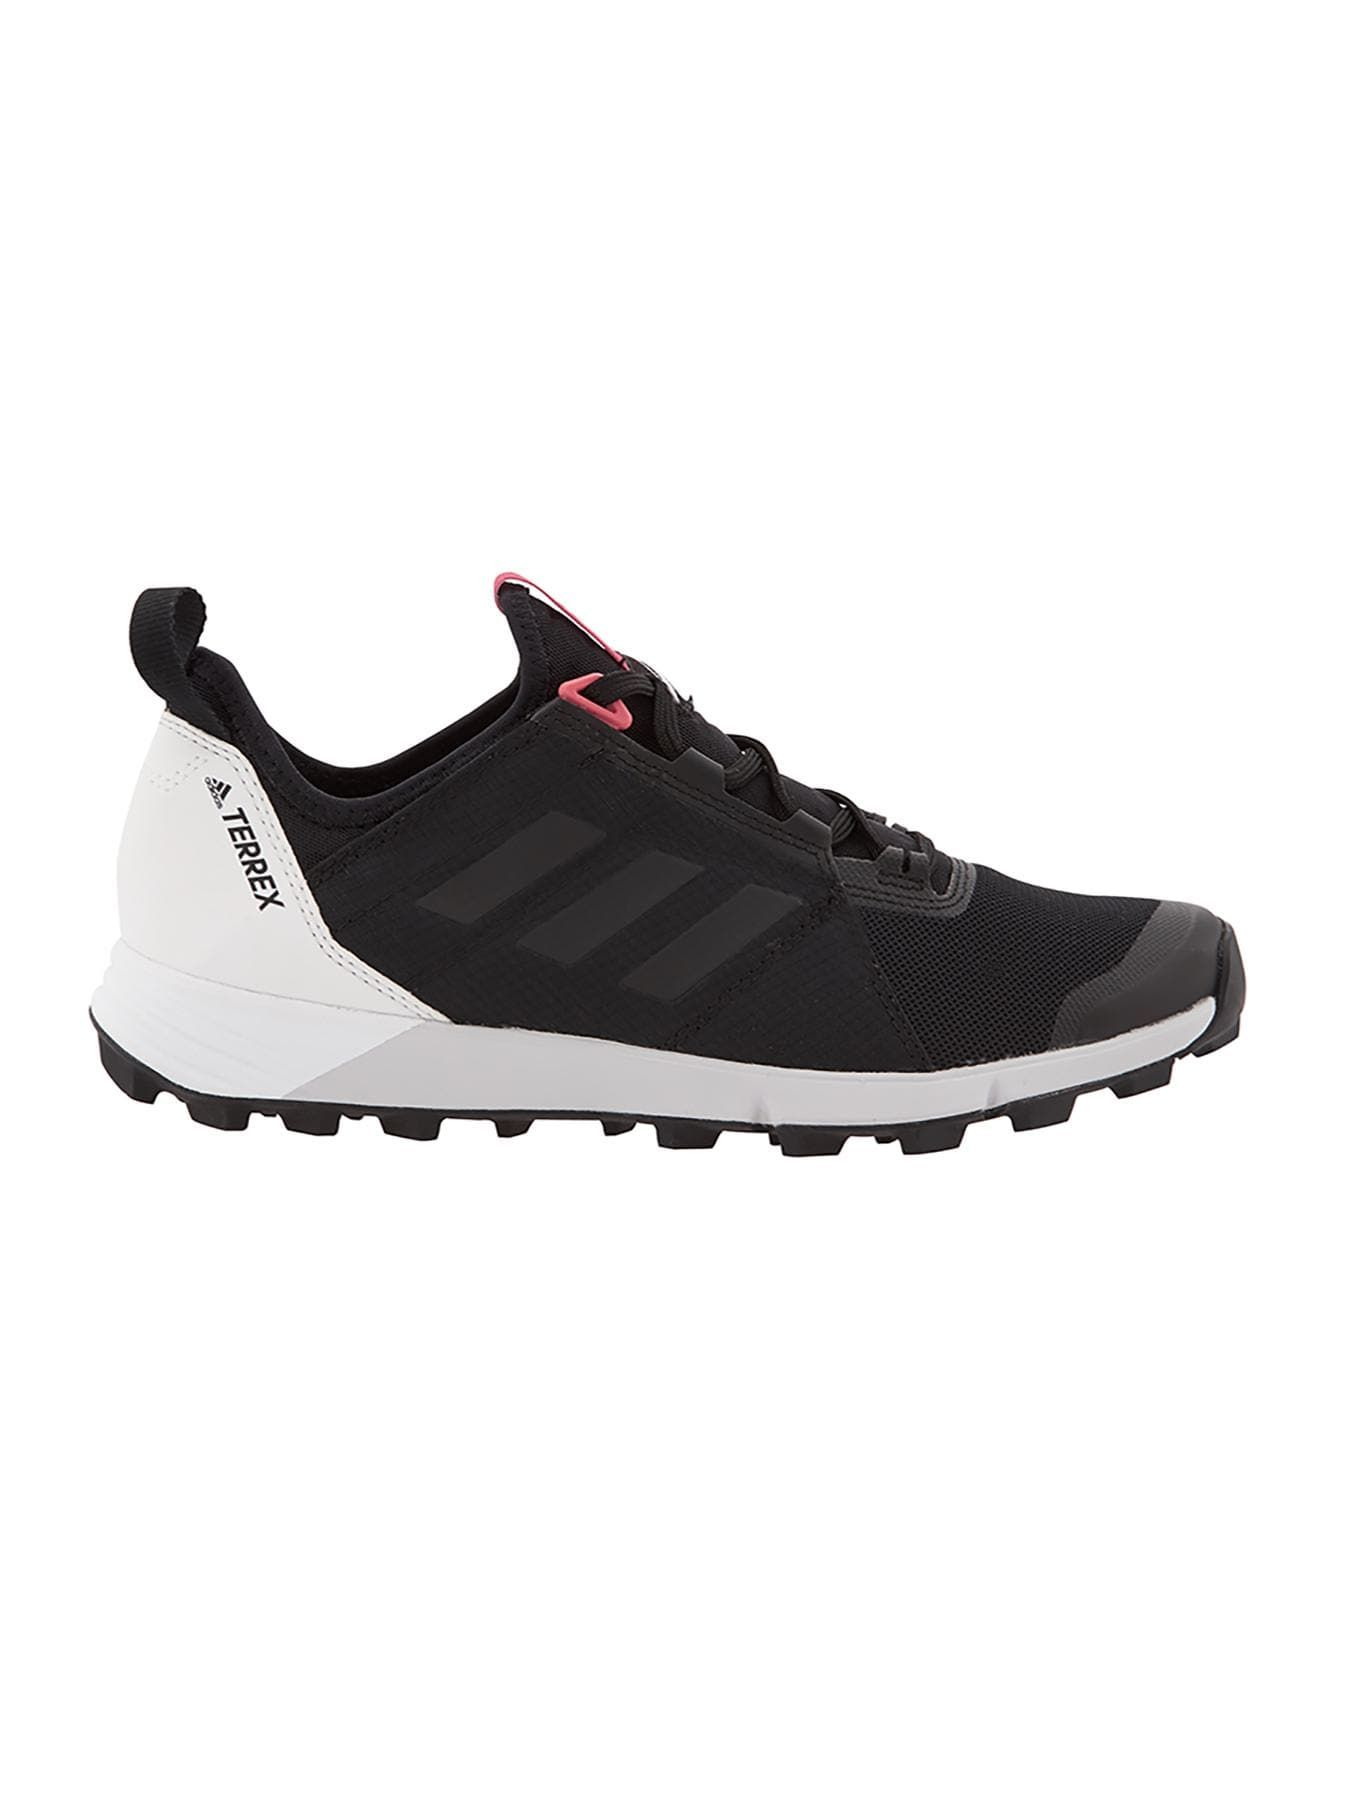 Terrex Agravic Speed Sneaker By Adidas® | Sneakers, Adidas